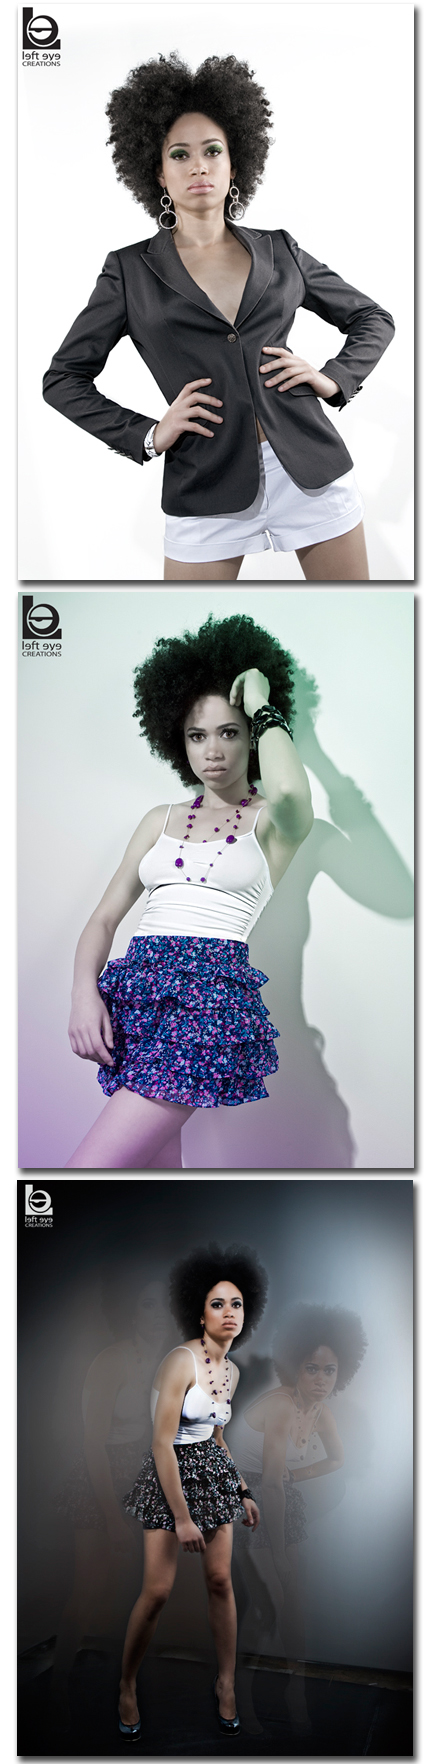 I styled this:-D I love that skirt. Jun 18, 2008 Makeup by Natalie (she is not on mm and doesnt have a website)